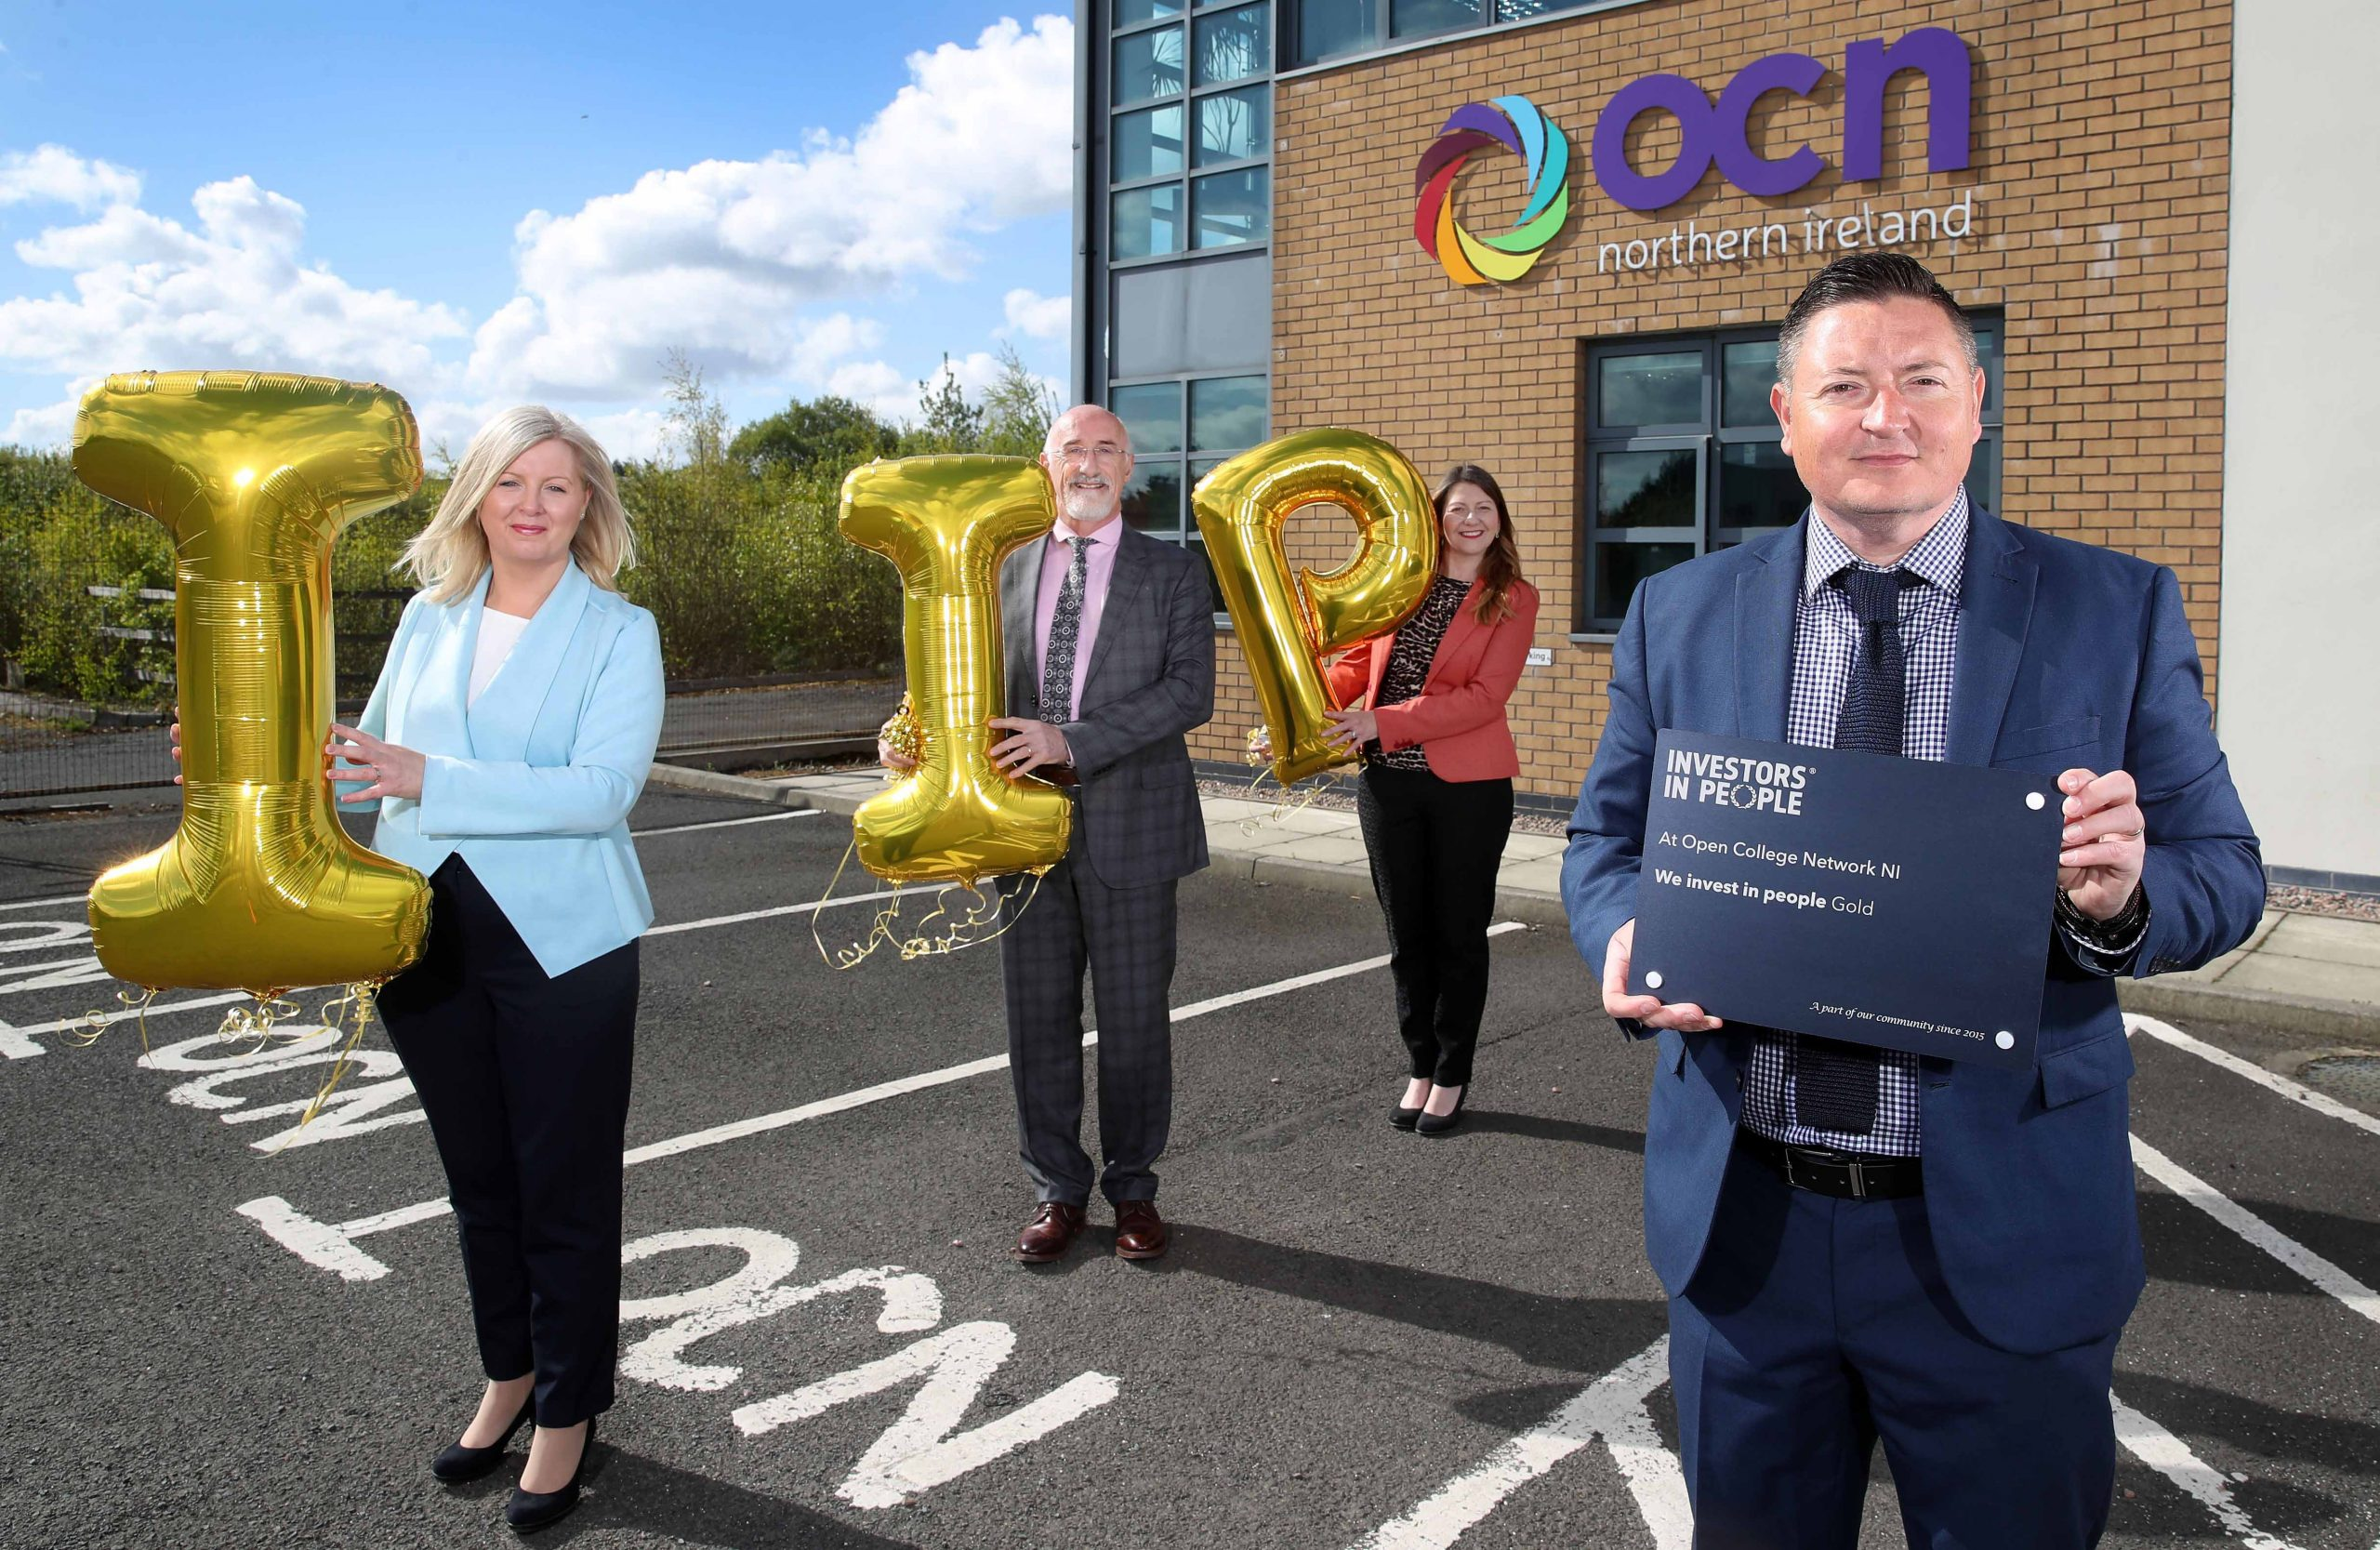 """OPEN COLLEGE NETWORK NI (OCN NI) has been awarded 'We invest in people, gold accreditation' by Investors in People, a status only 17% of accredited organisations have achieved. OCN NI is an educational charity and awarding body that advances education by developing qualifications for adults and young people throughout NI and has recently become Northern Ireland's leading awarding body. Martin Flynn, CEO, OCN NI, said: """"I am really very proud that our team has achieved the Gold accreditation from Investors in People. Everyone at OCN NI has shown how hard-work and commitment helps improve all of our working lives, especially poignant during a pandemic, and I'd like to send a personal note of thanks to all of my colleagues"""", he concluded. For more information visit www.ocnni.org.uk. Celebrating their gold accreditation are OCN NI colleagues (l to r), Charlotte Fegan, Director of Corporate Services, Simon Hamilton, Director of Compliance and Audit, Jo Bailey, Director of Business Development and Martin Flynn, CEO."""